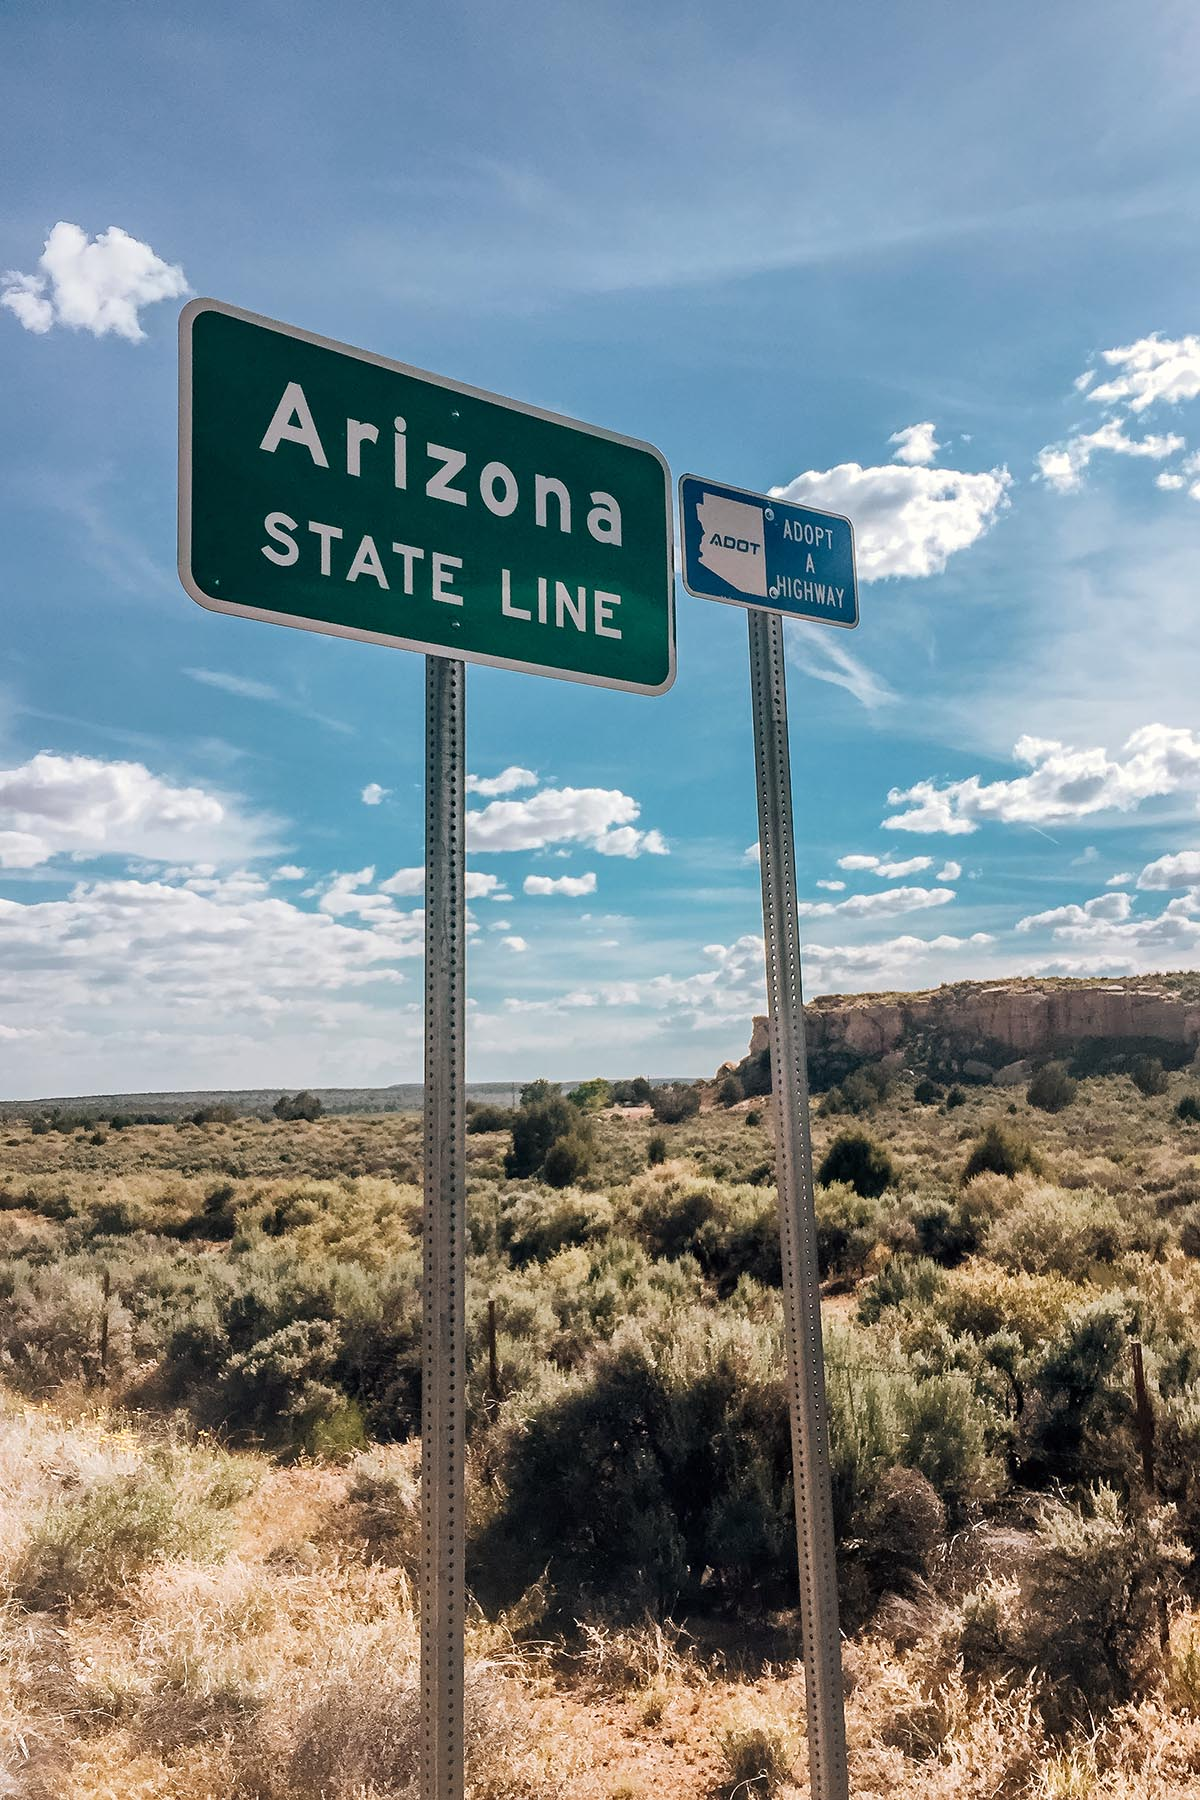 Roadside signs reading Arizona State Line and Adopt a Highway. There are bushes and rock formations in the background landscape.